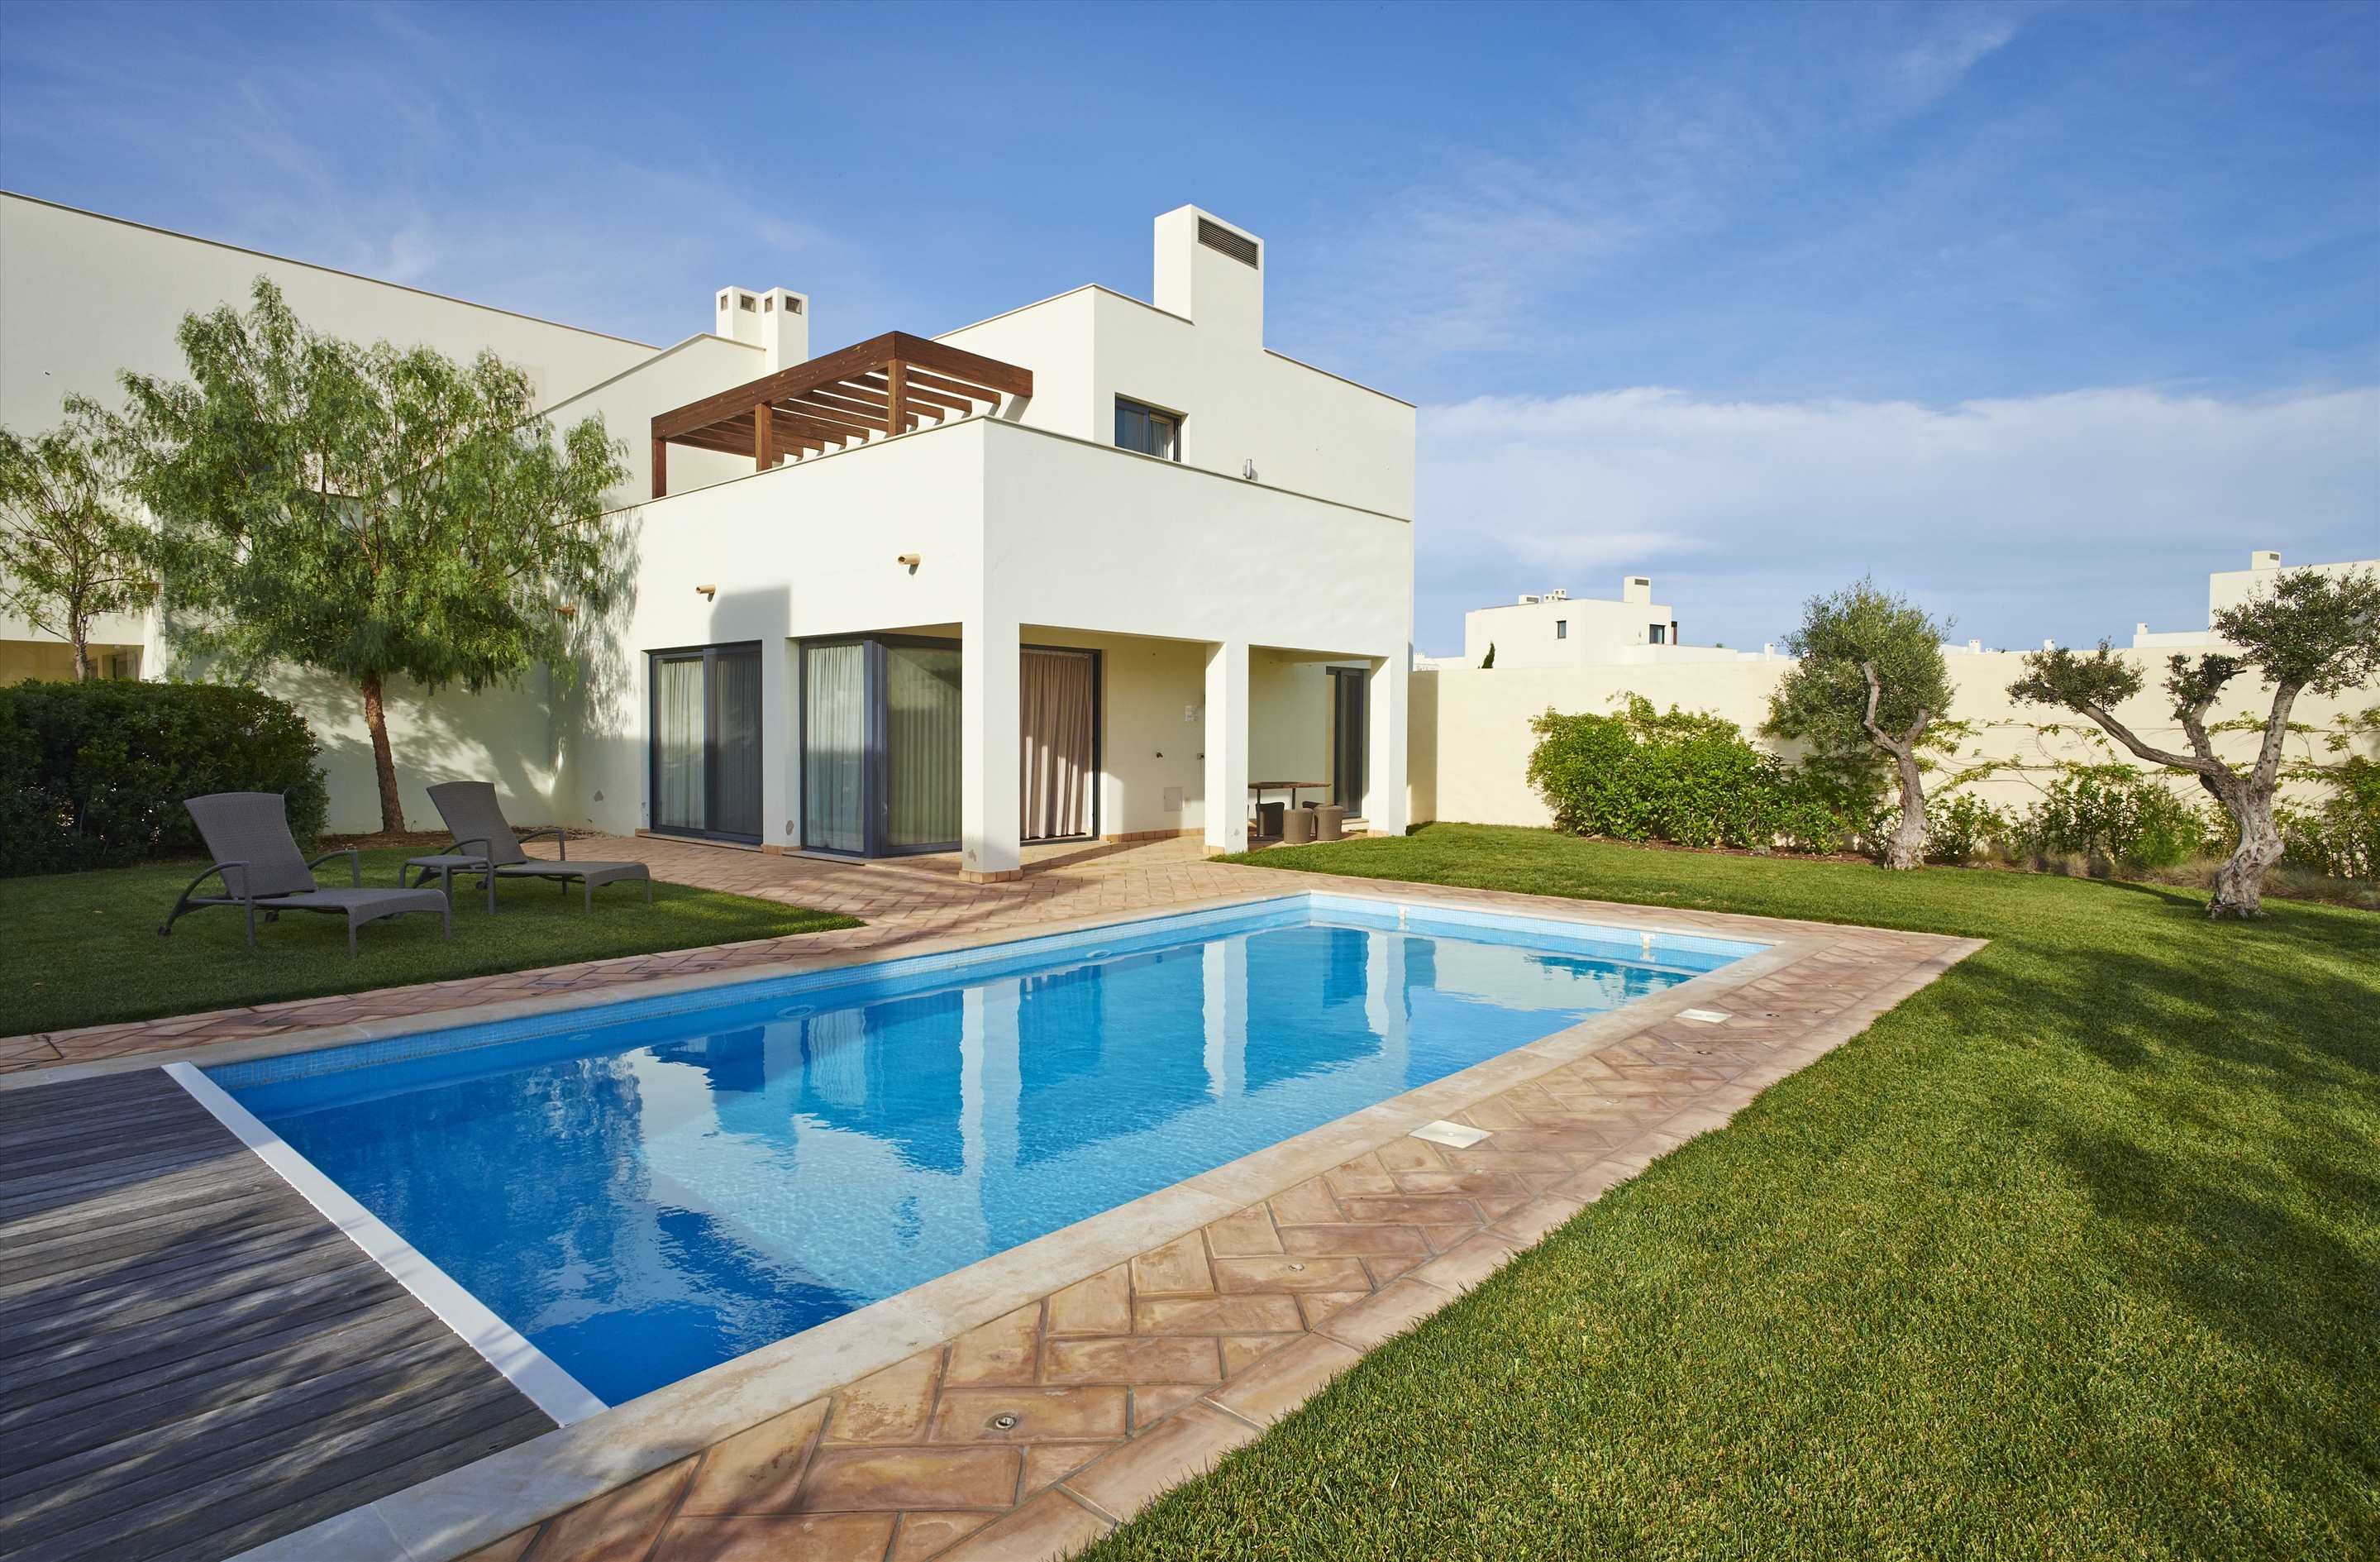 Martinhal Village Pinewood House with private pool, Grand Deluxe Two Bedrooms, 2 bedroom villa in Martinhal Sagres, Algarve